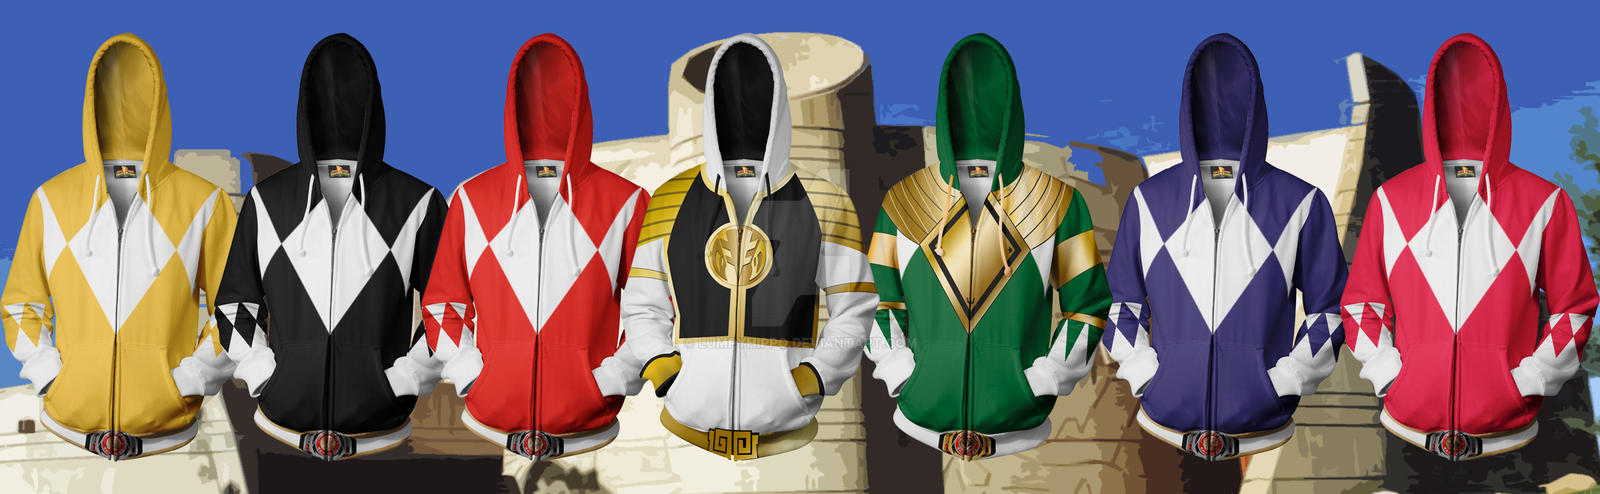 Mighty Morphin' Power Ranger Hoodies by lumpyhippo